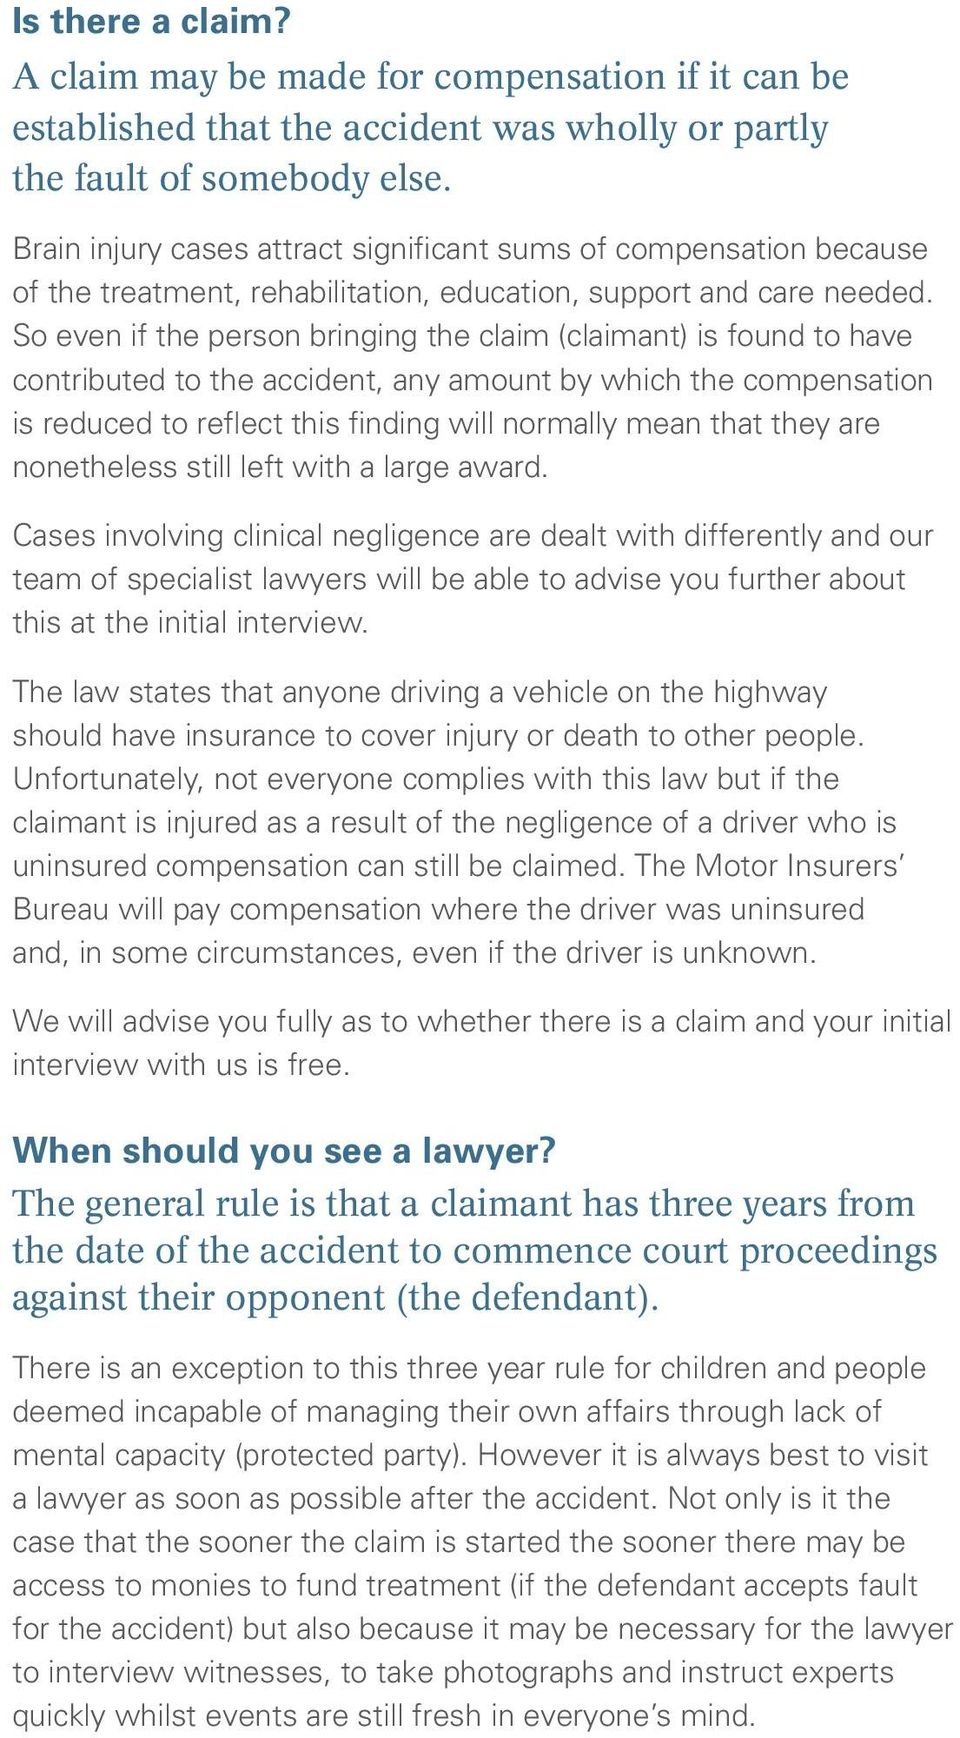 So even if the person bringing the claim (claimant) is found to have contributed to the accident, any amount by which the compensation is reduced to reflect this finding will normally mean that they